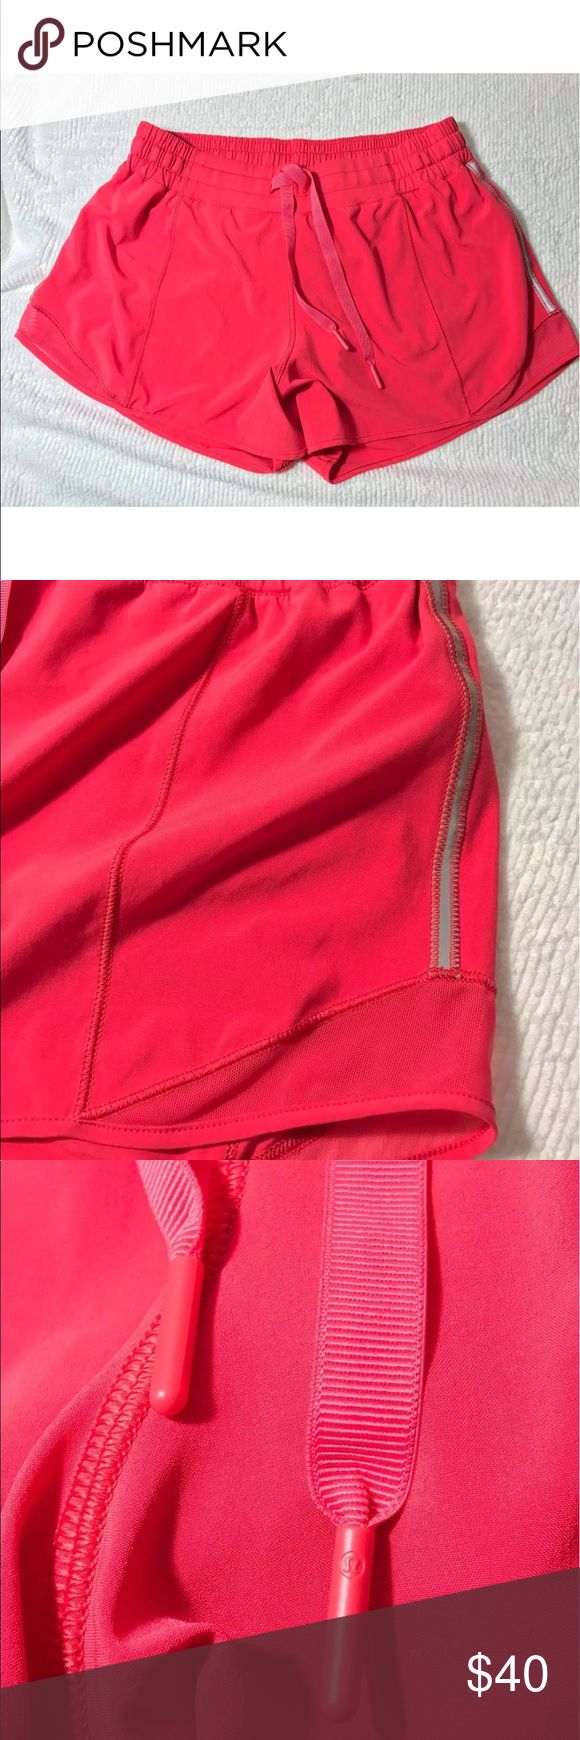 "Lululemon hottie hot pink shorts 10 tall Lululemon Size 10 tall Style Name is  Hotty Hot Short   Coral Pink Color They are in perfect condition. Look unused.  Inseam is 4"" outseam is  11"" Lining inside lululemon athletica Shorts"